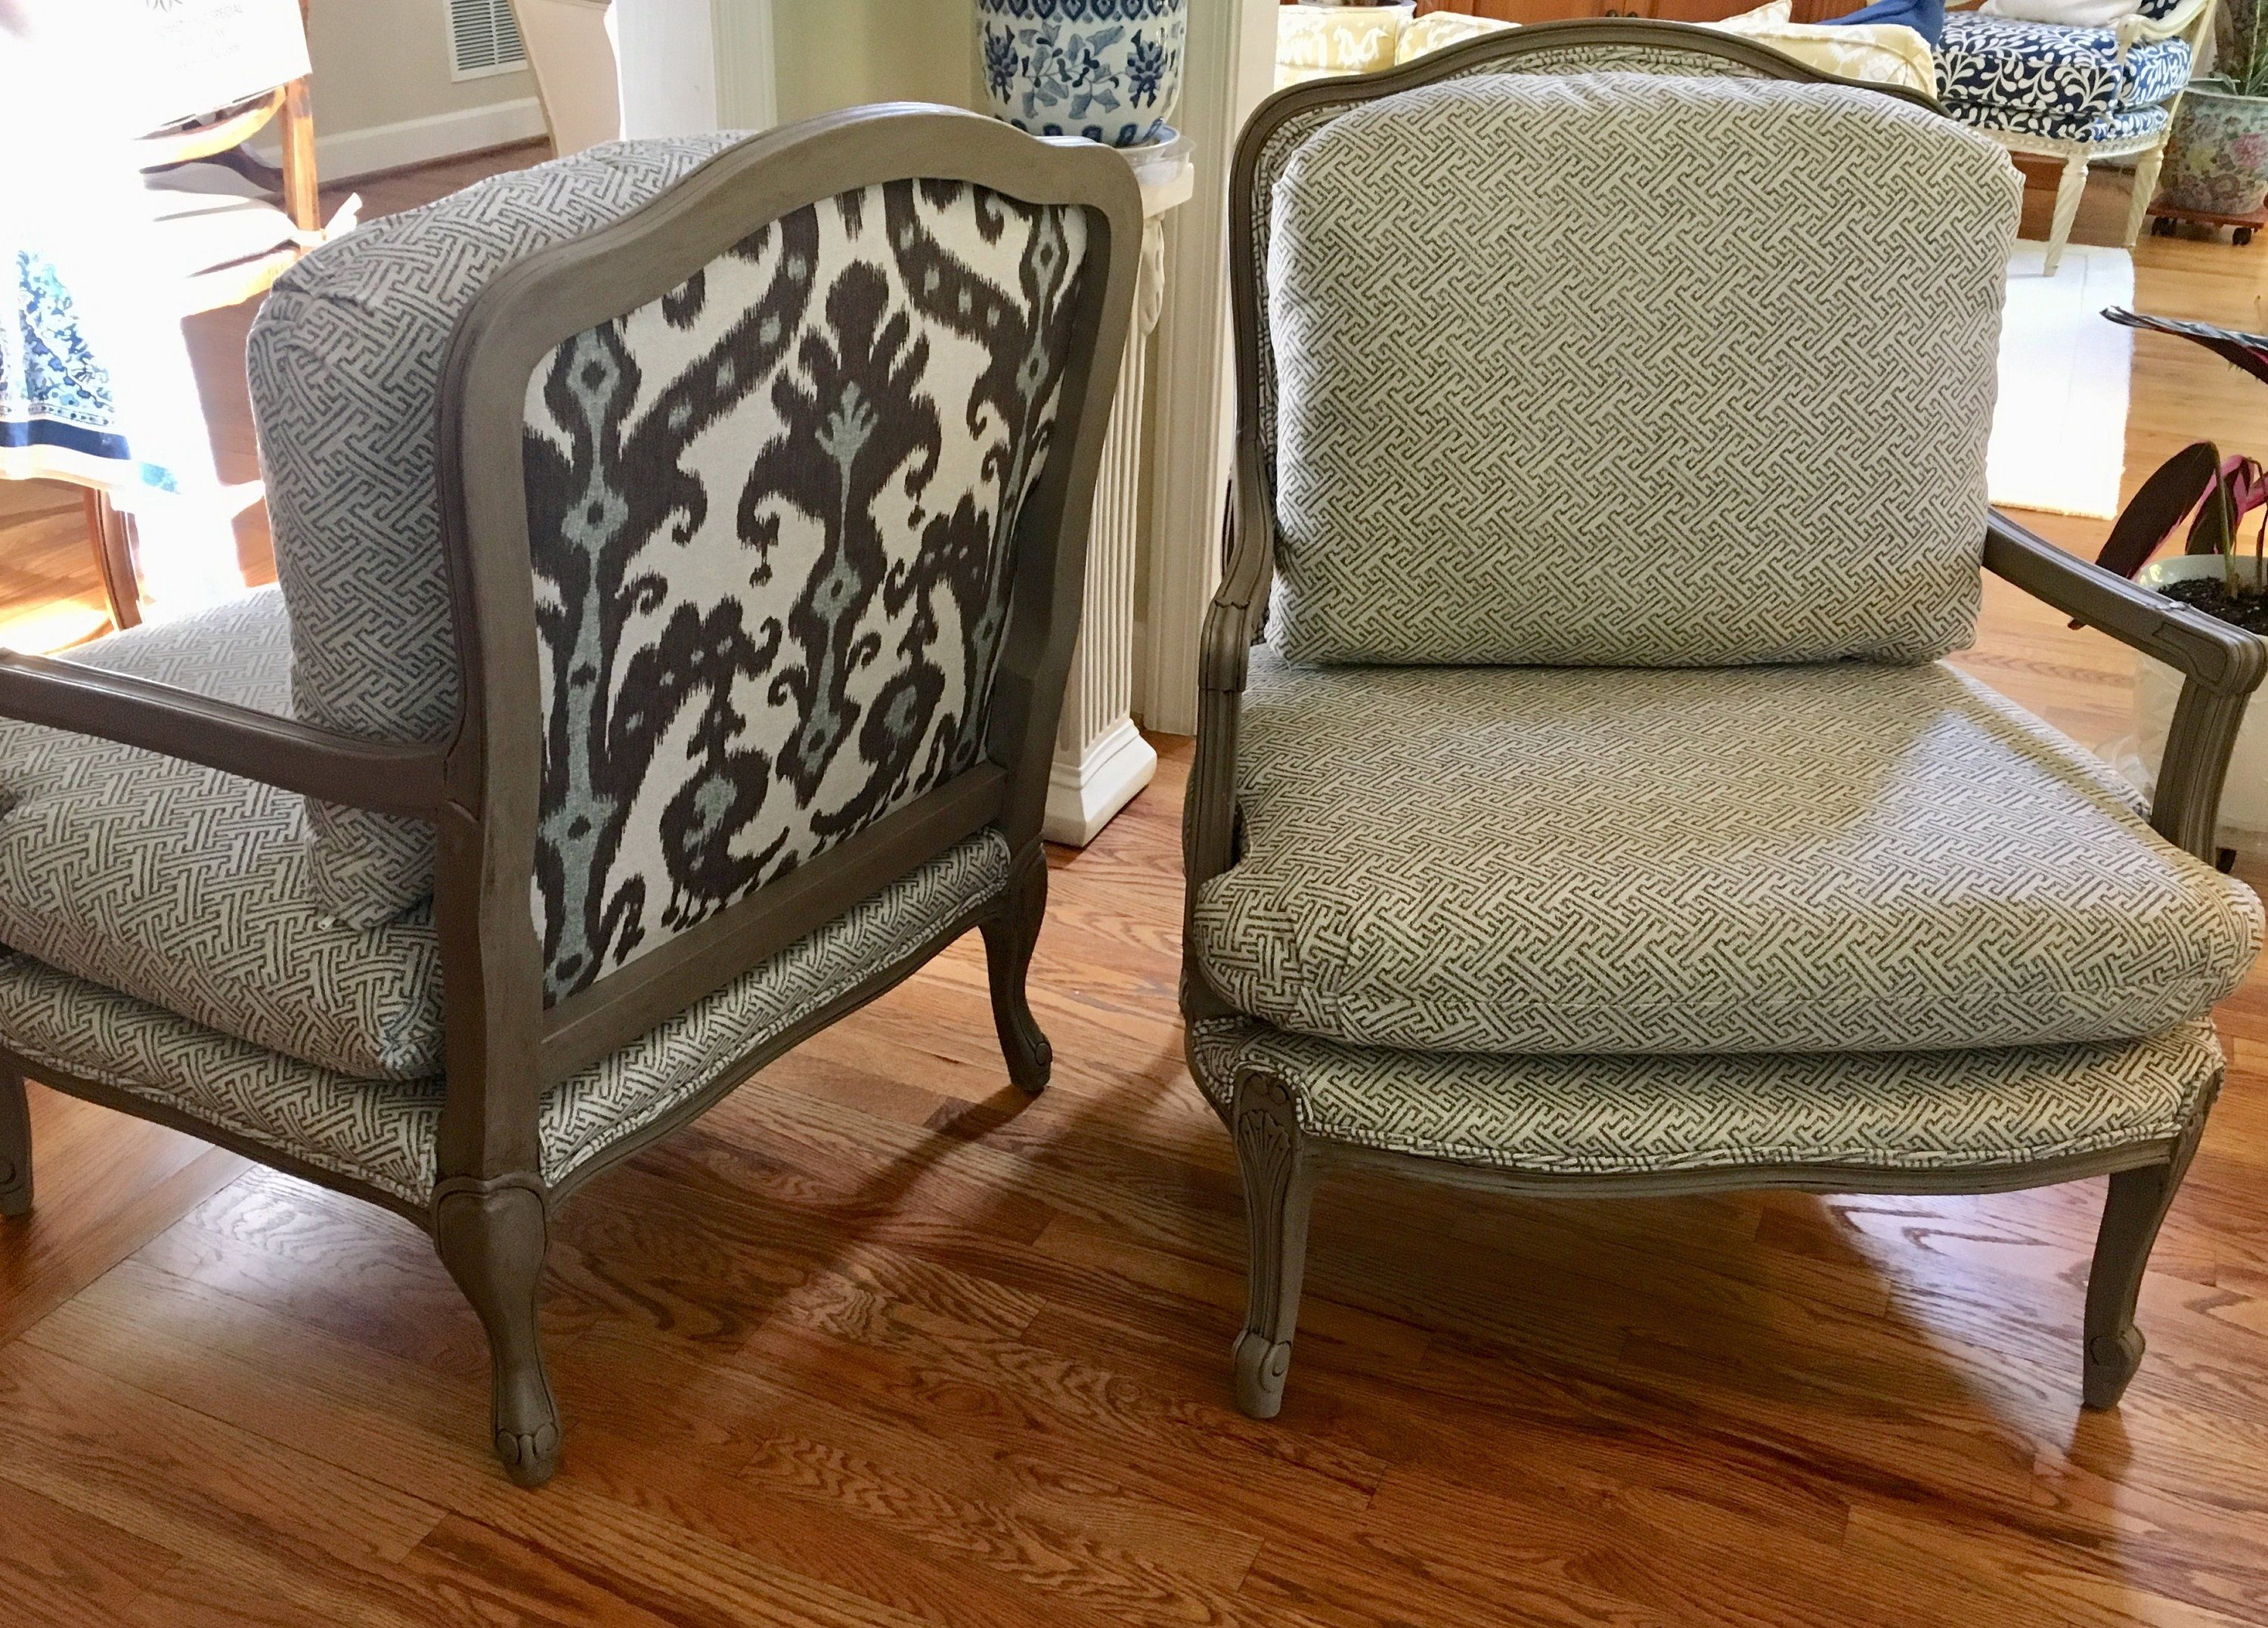 Pair of french style chairs in high quality performance fabrics totally refurbished shipping rates vary by wydevendesigns on etsy